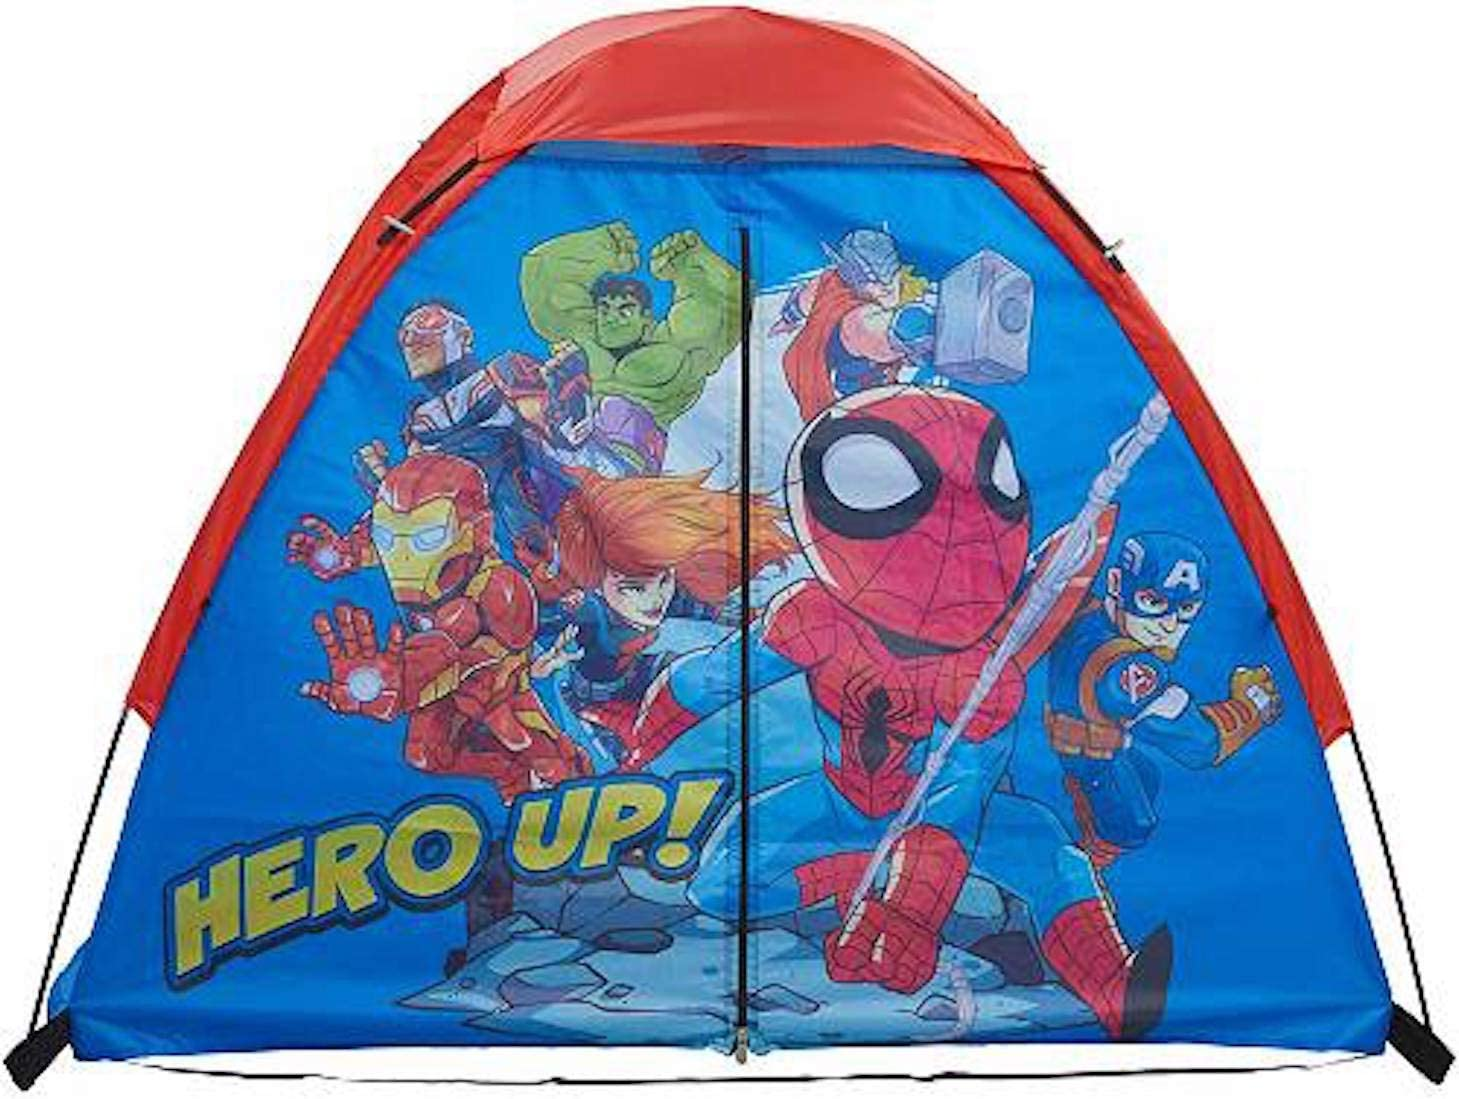 Super Challenge the lowest price of Japan Heroes Kids Topics on TV Tent Play